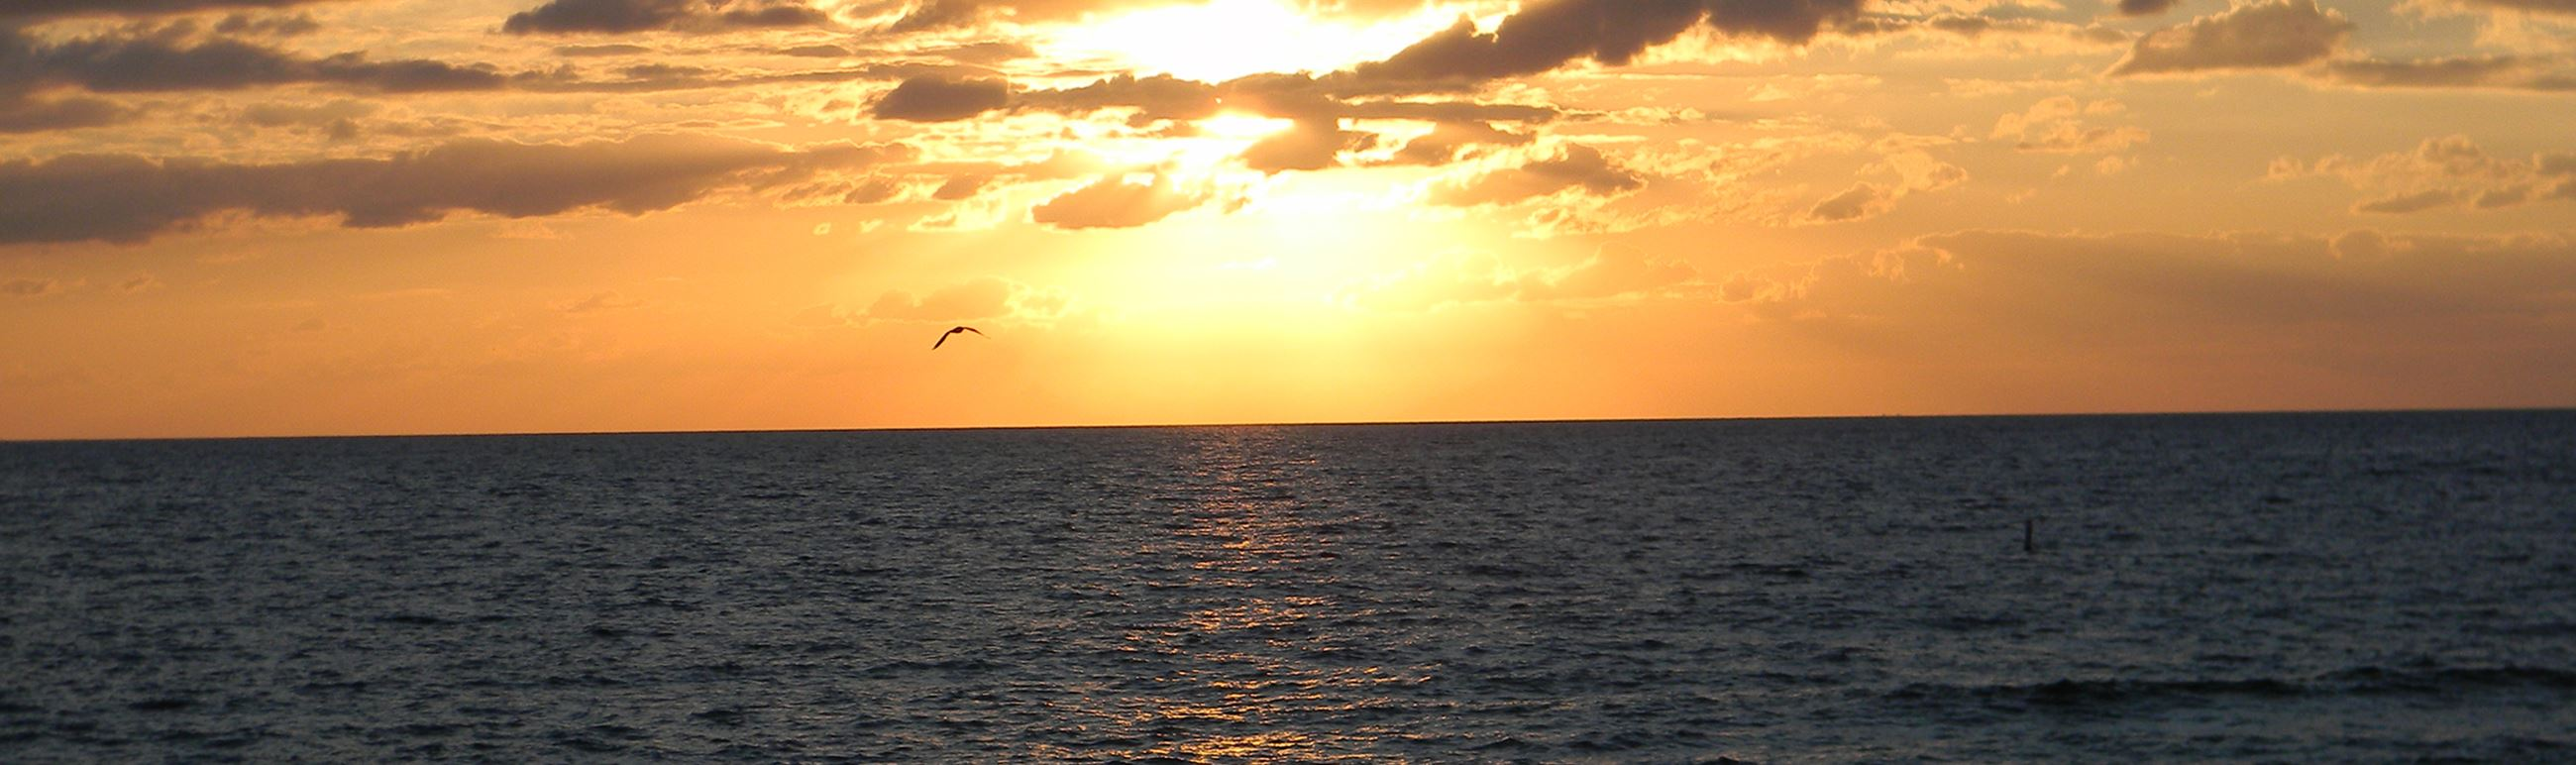 Lauderdale-By-The-Sea, FL | Official Website